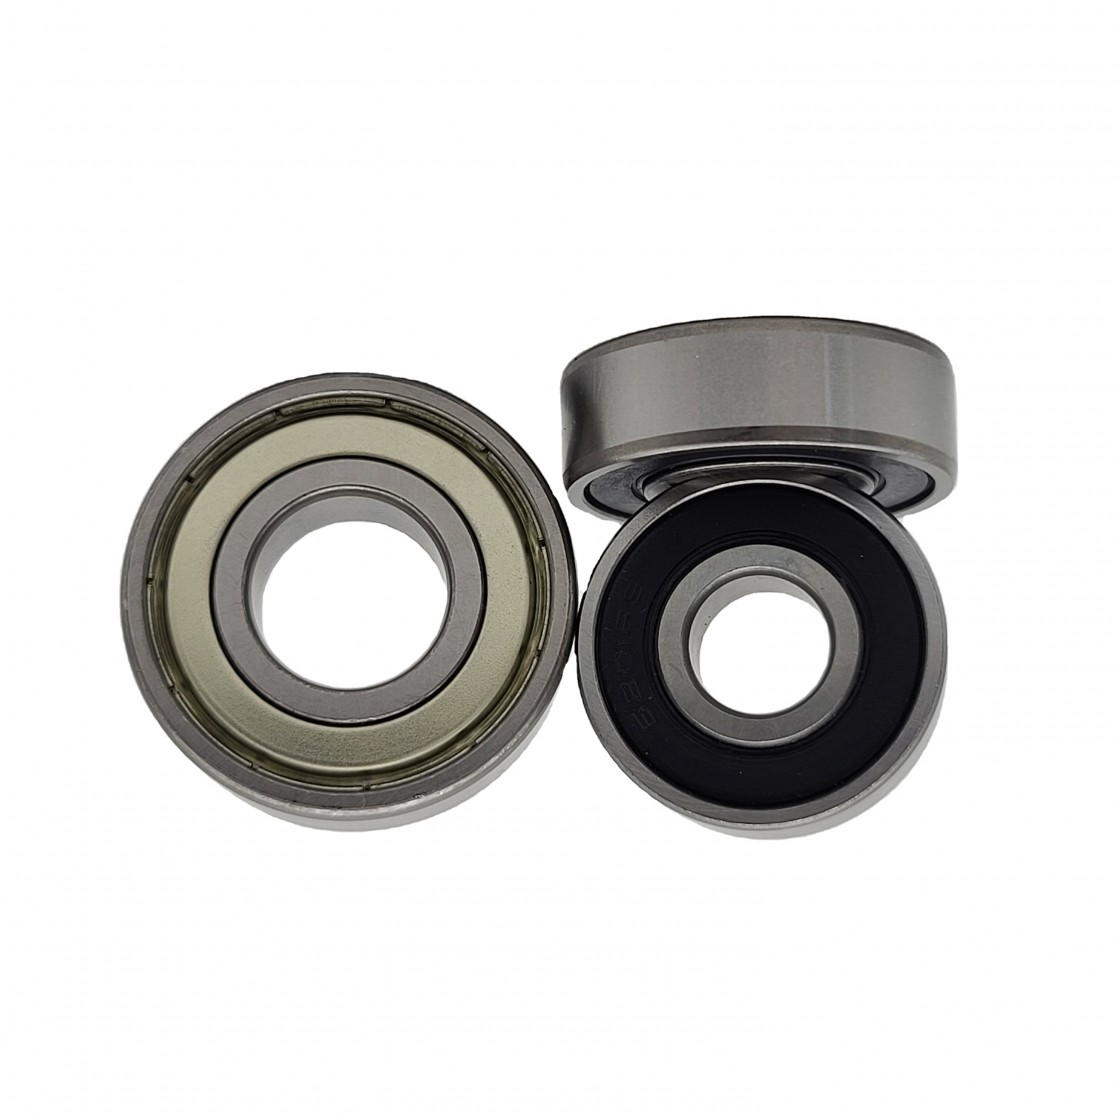 Pillow Block Bearing Ucf204, Ucf205, Ucf206 Bearing Units